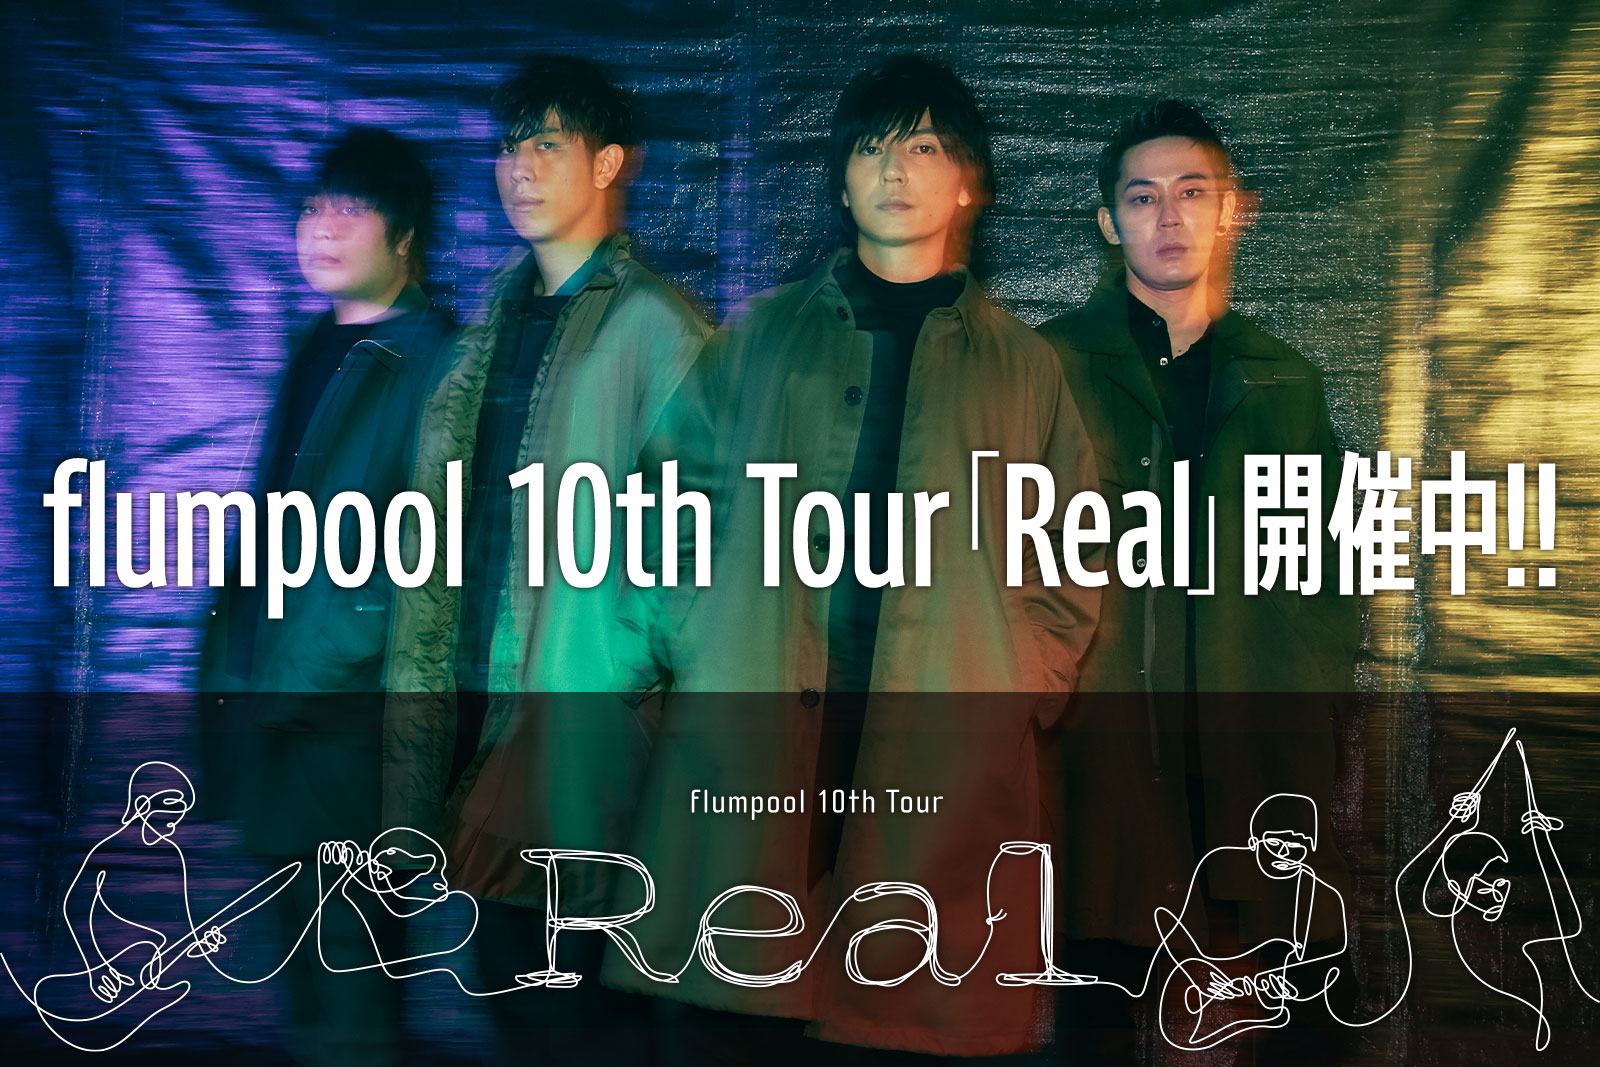 flumpool 10th Tour「Real」開催中!!